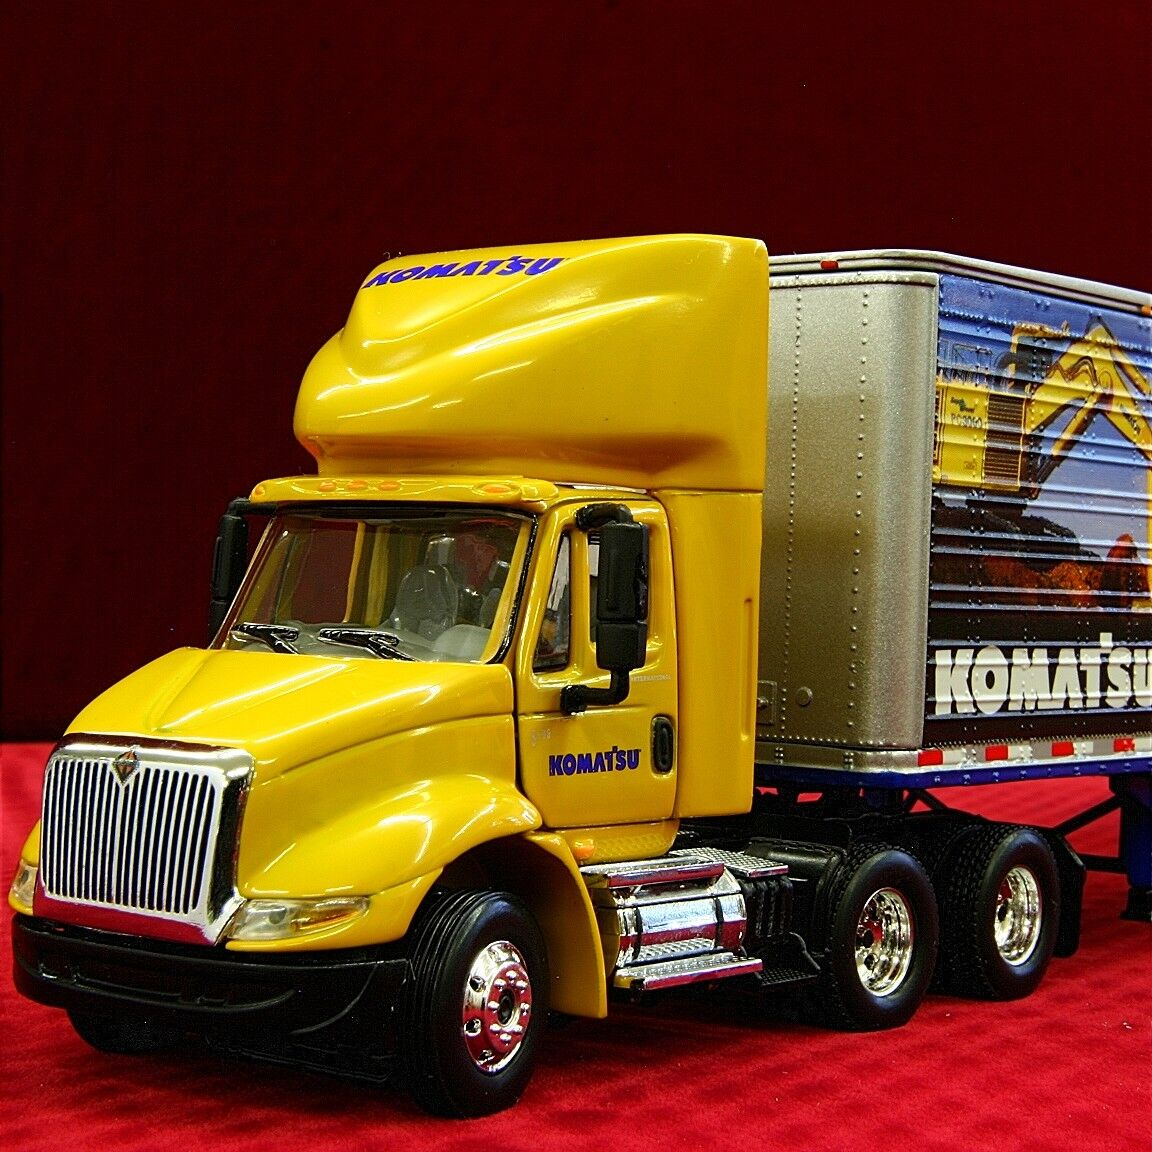 NEW / Sold-Out - KOMATSU IH 8600 TRACTOR TRAILER 1/64 FIRST GEAR 69-0018 DCP